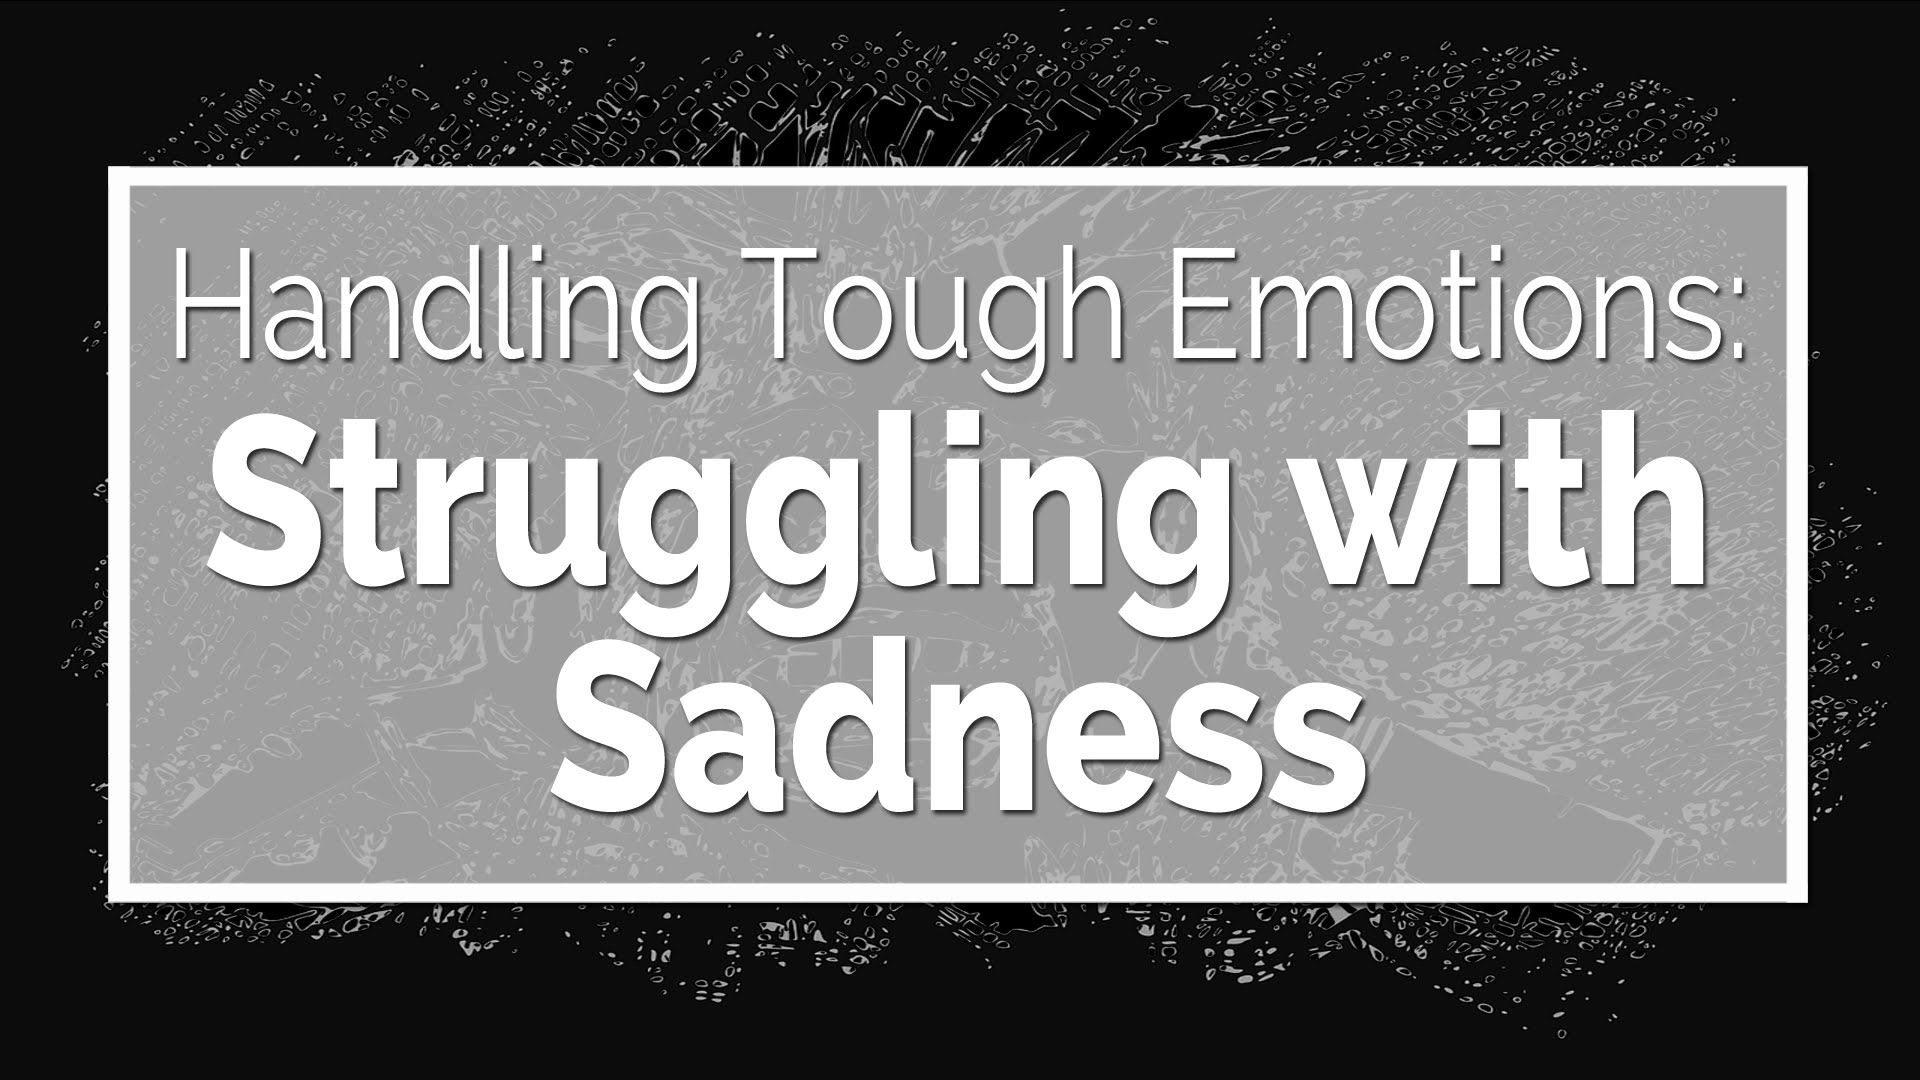 Struggling with Sadness